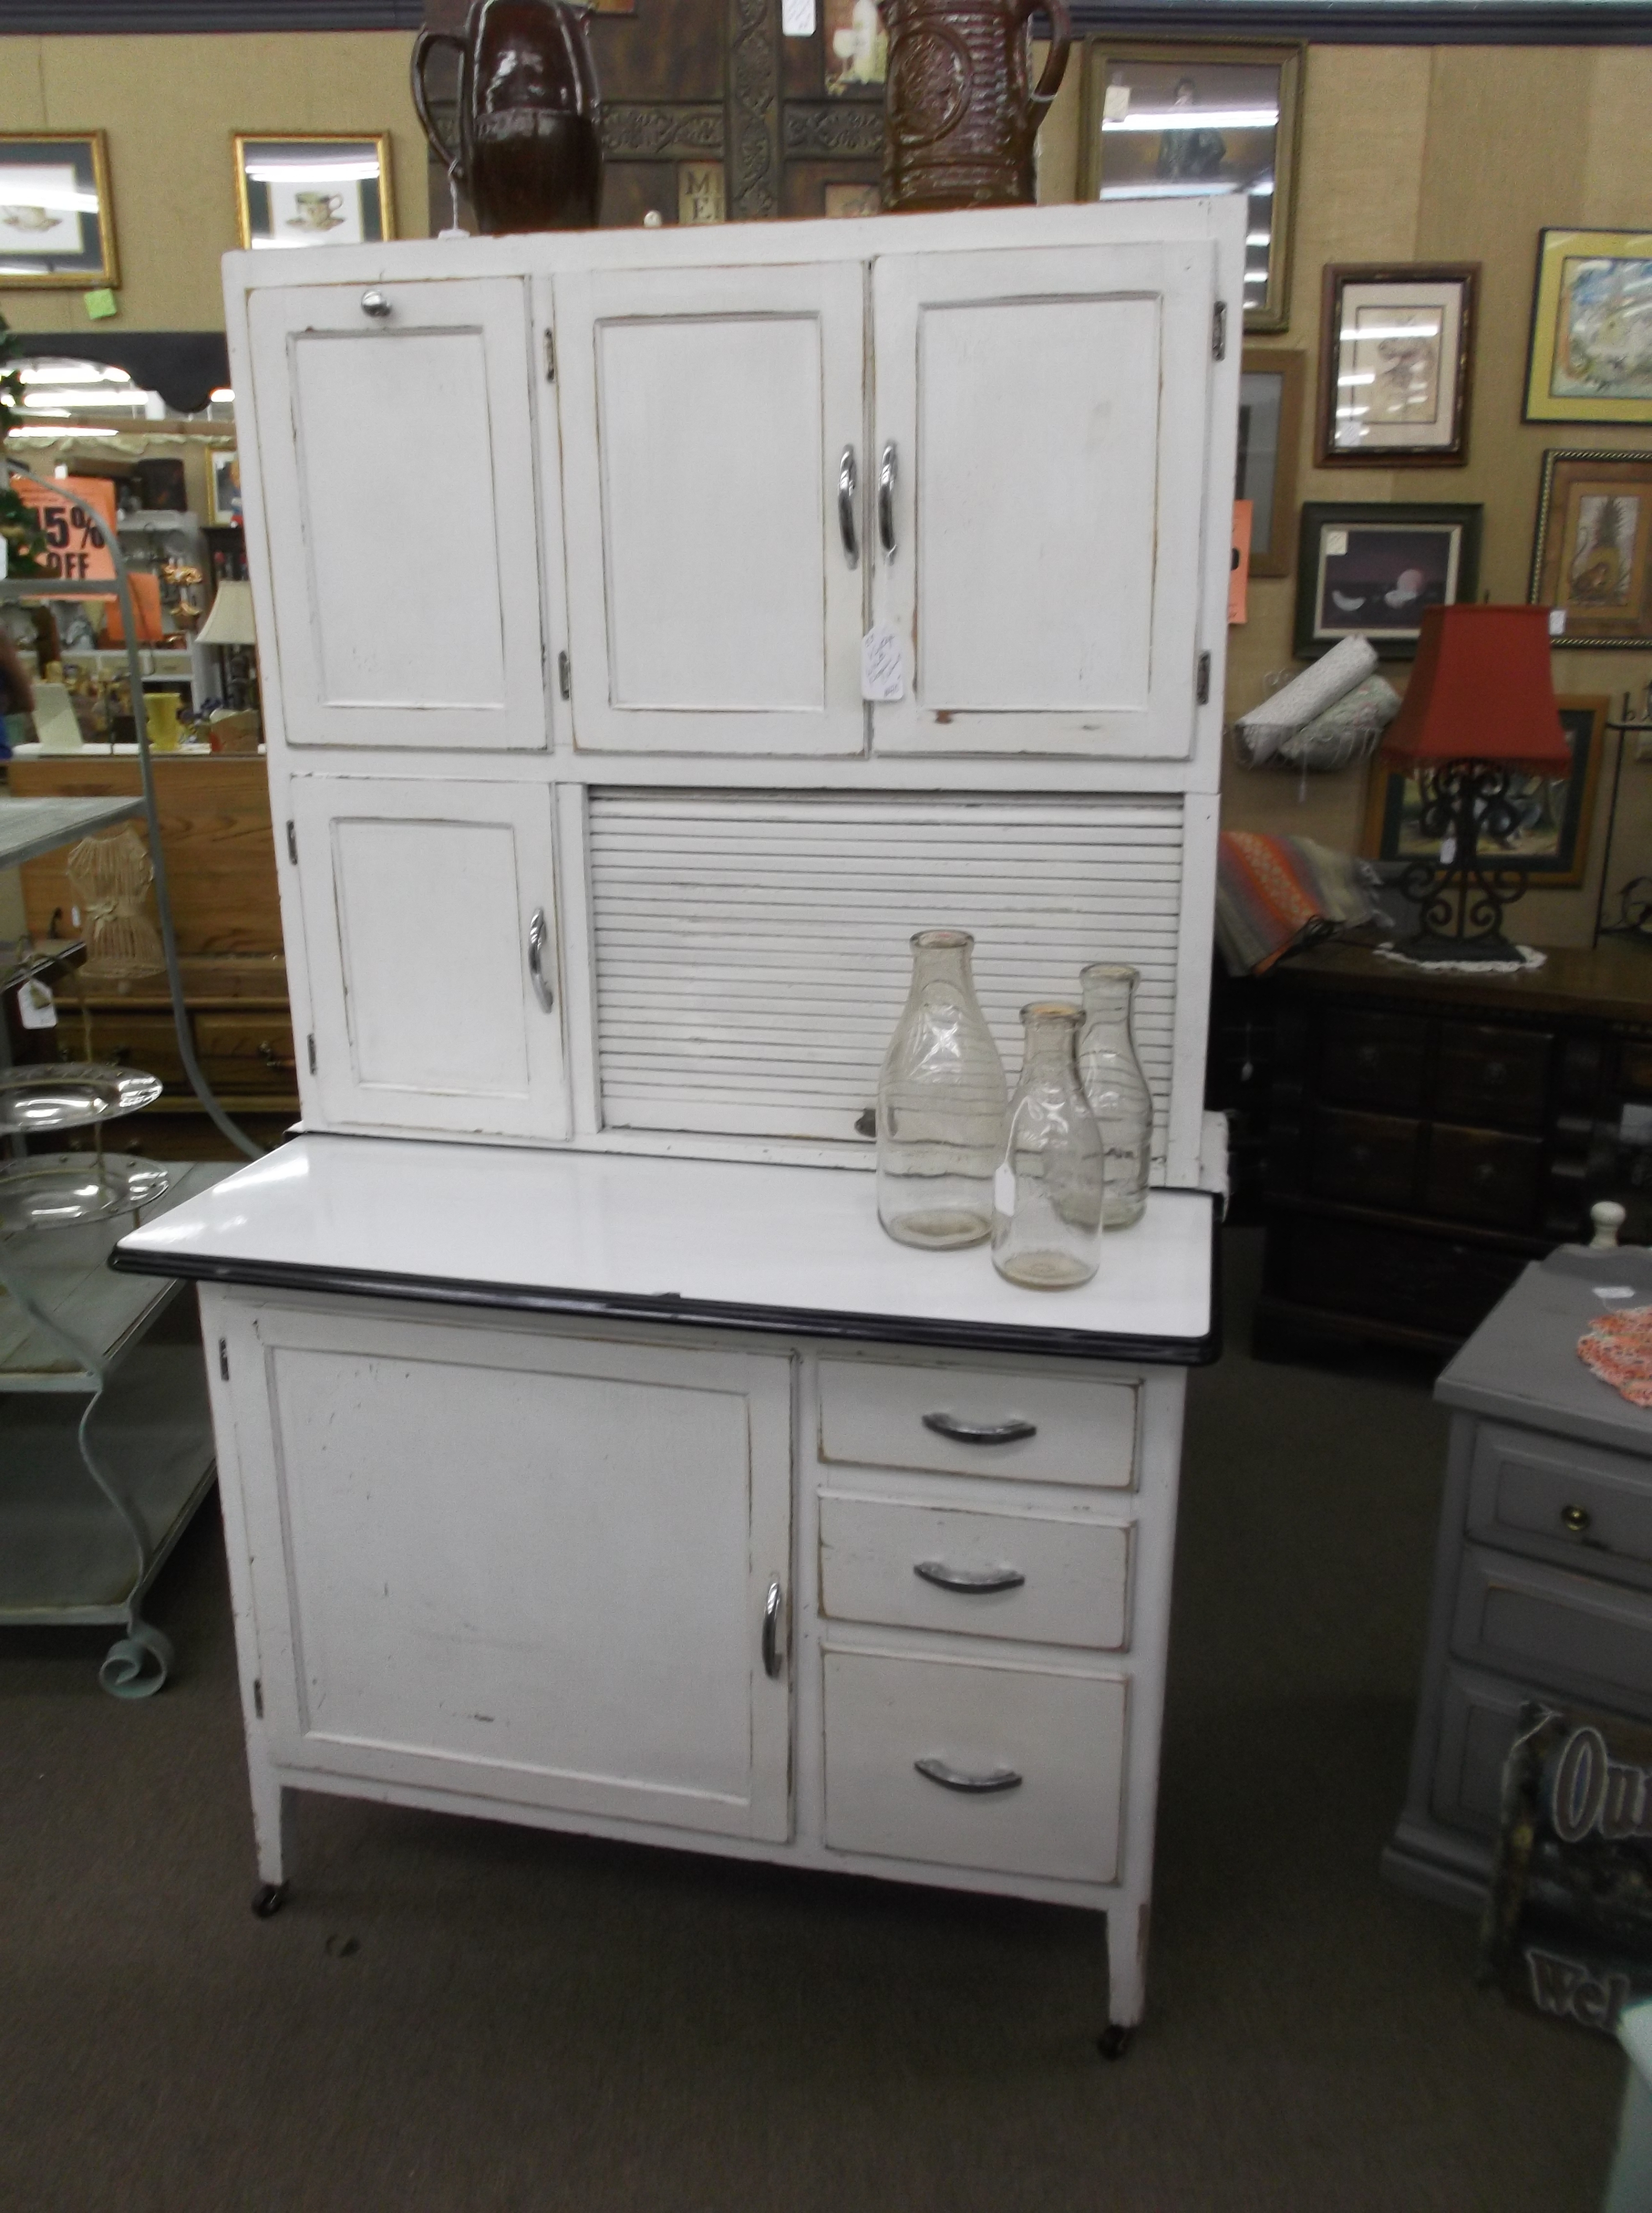 Permalink to Antique Kitchen Cabinets With Flour Sifter